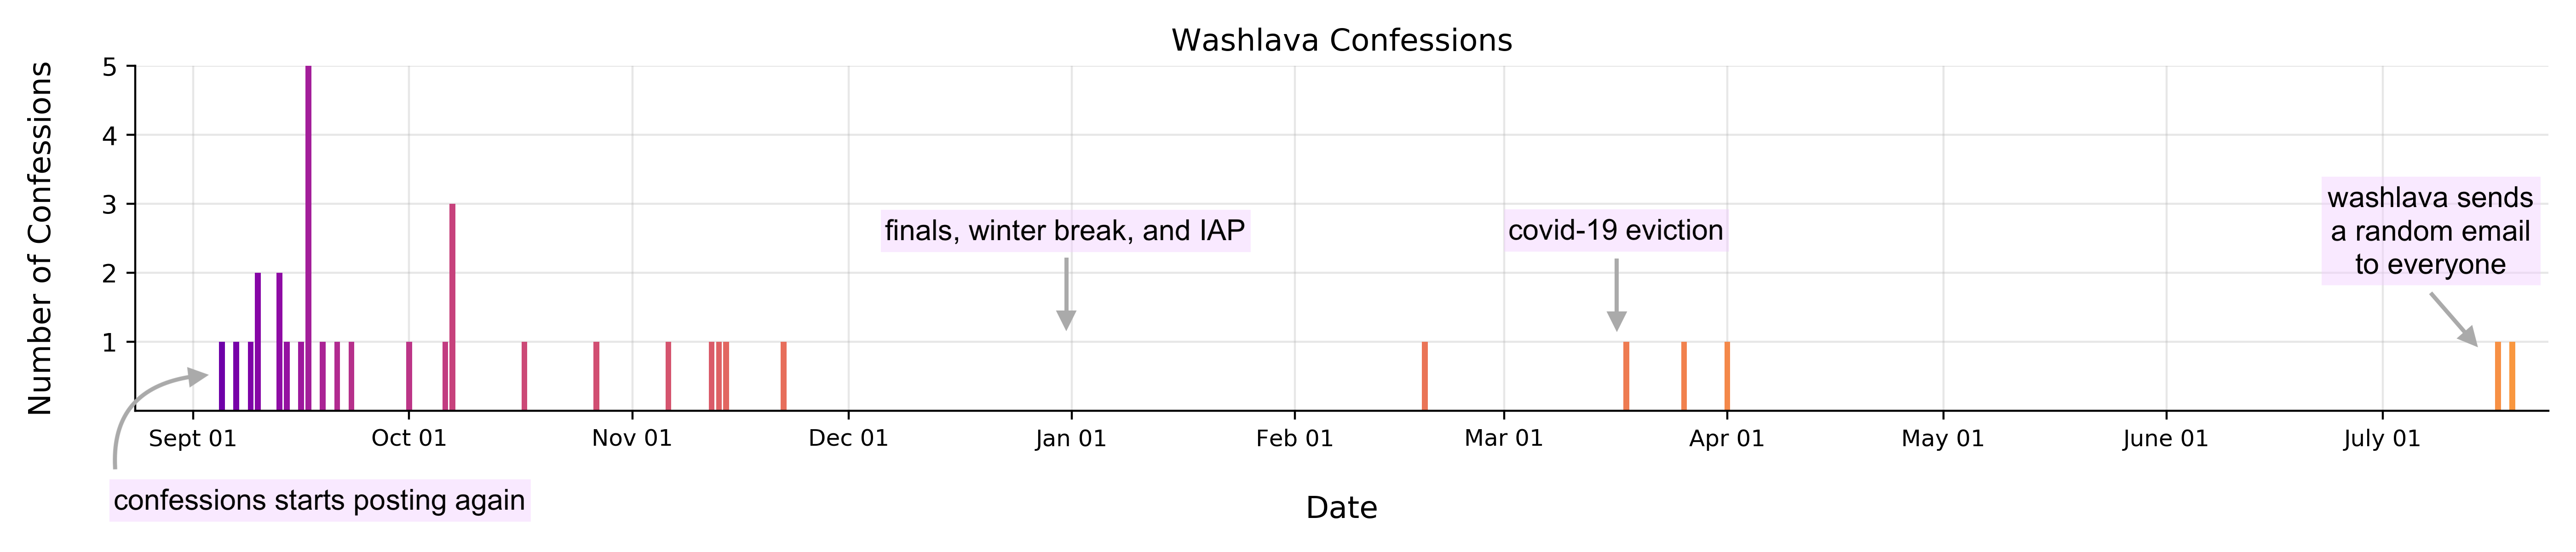 bar graph showing confessions over time